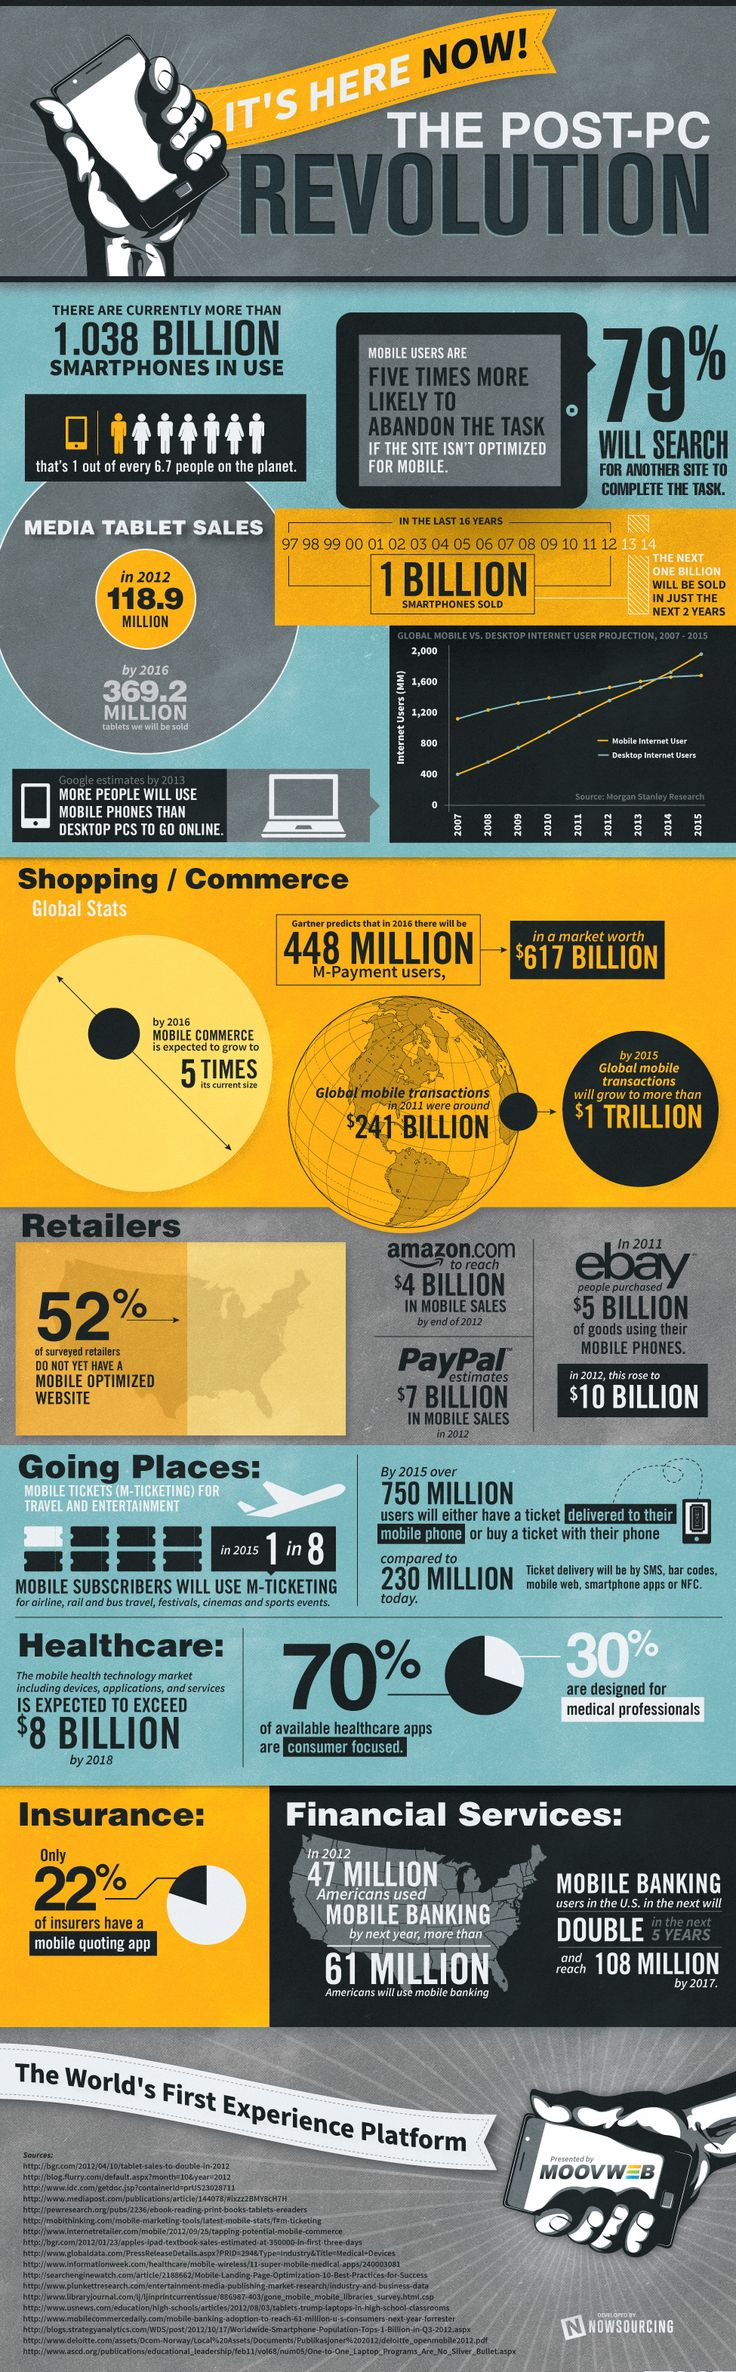 Infographic: Marketers Meet The Post-PC Era  Produced by Moovweb and shared with Mobile Marketing Watch today, the premise of the infographic is that while we all know the global population has gone mobile, many businesses lack the mobile optimization that is needed to meet the new shift in content consumption and online behavior.